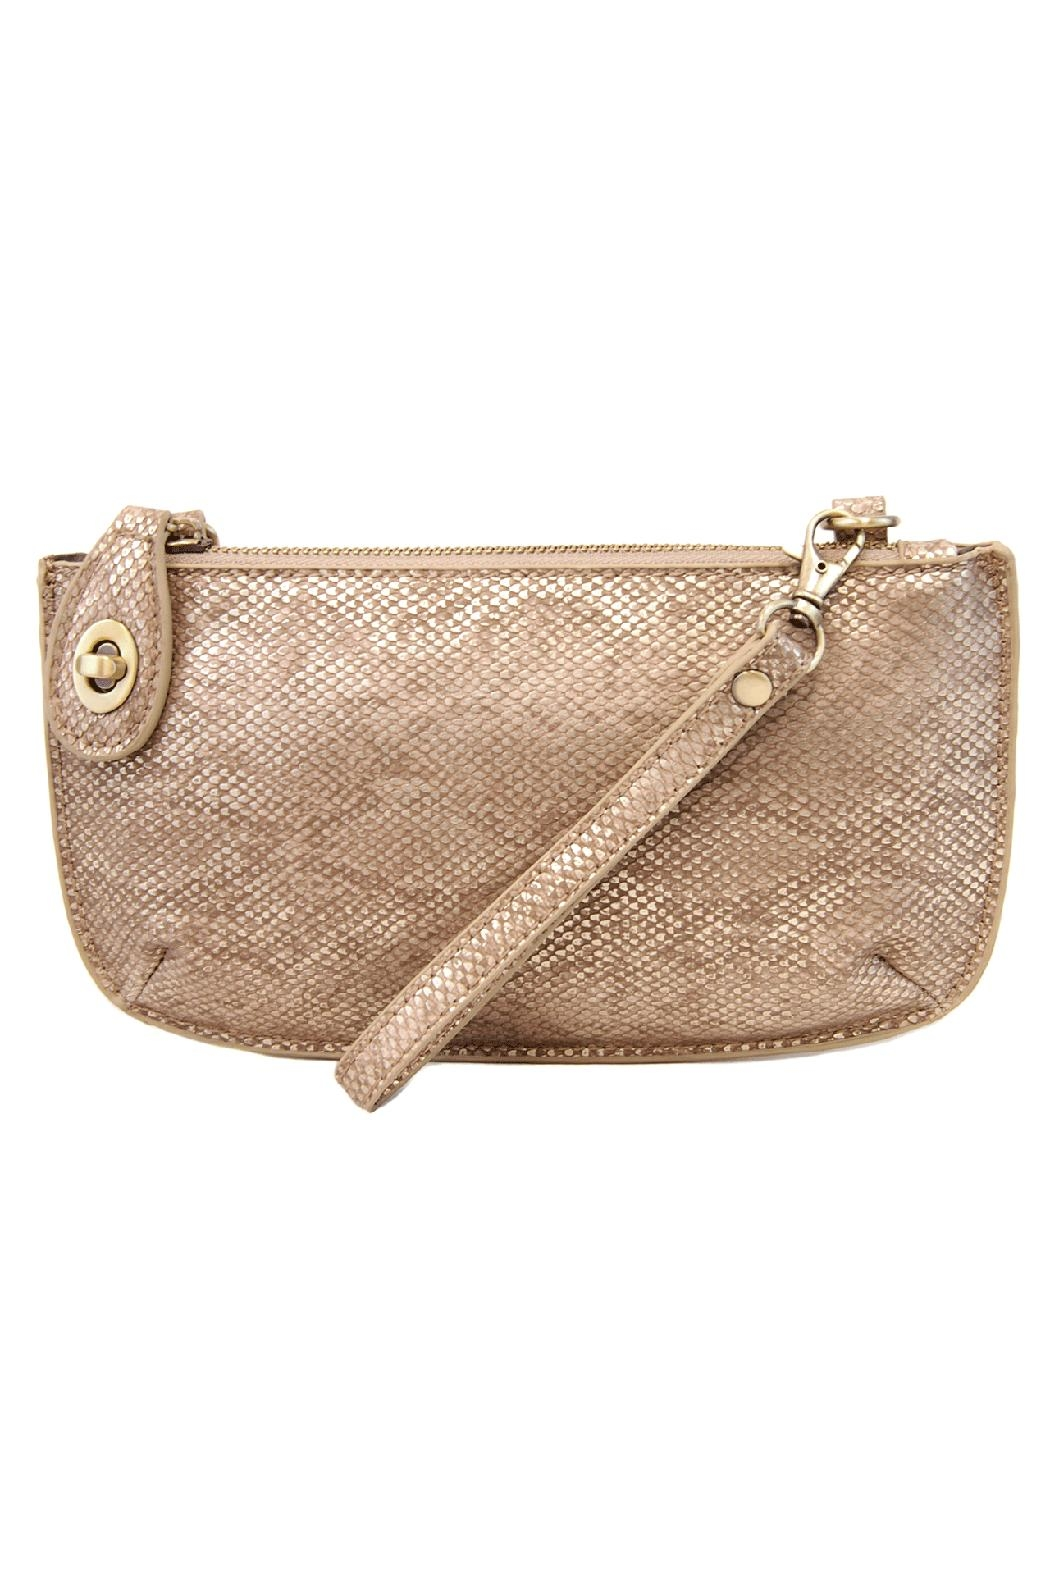 Joy Susan Accessories Python Crossbody Clutch - Front Cropped Image